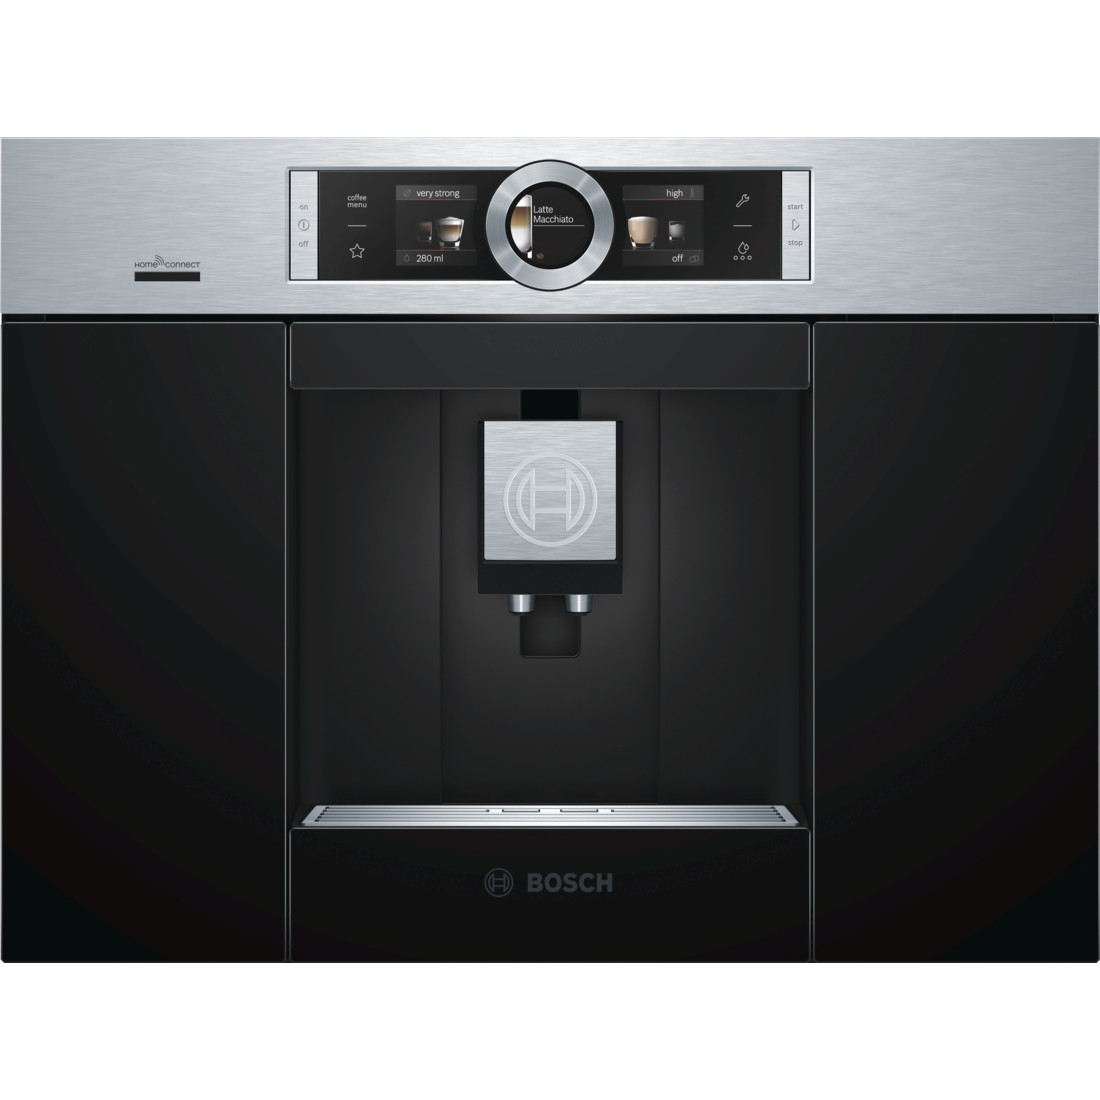 Bosch CTL636ES6 Stainless Steel Fully Automatic Bean-to-Cup Coffee Centre